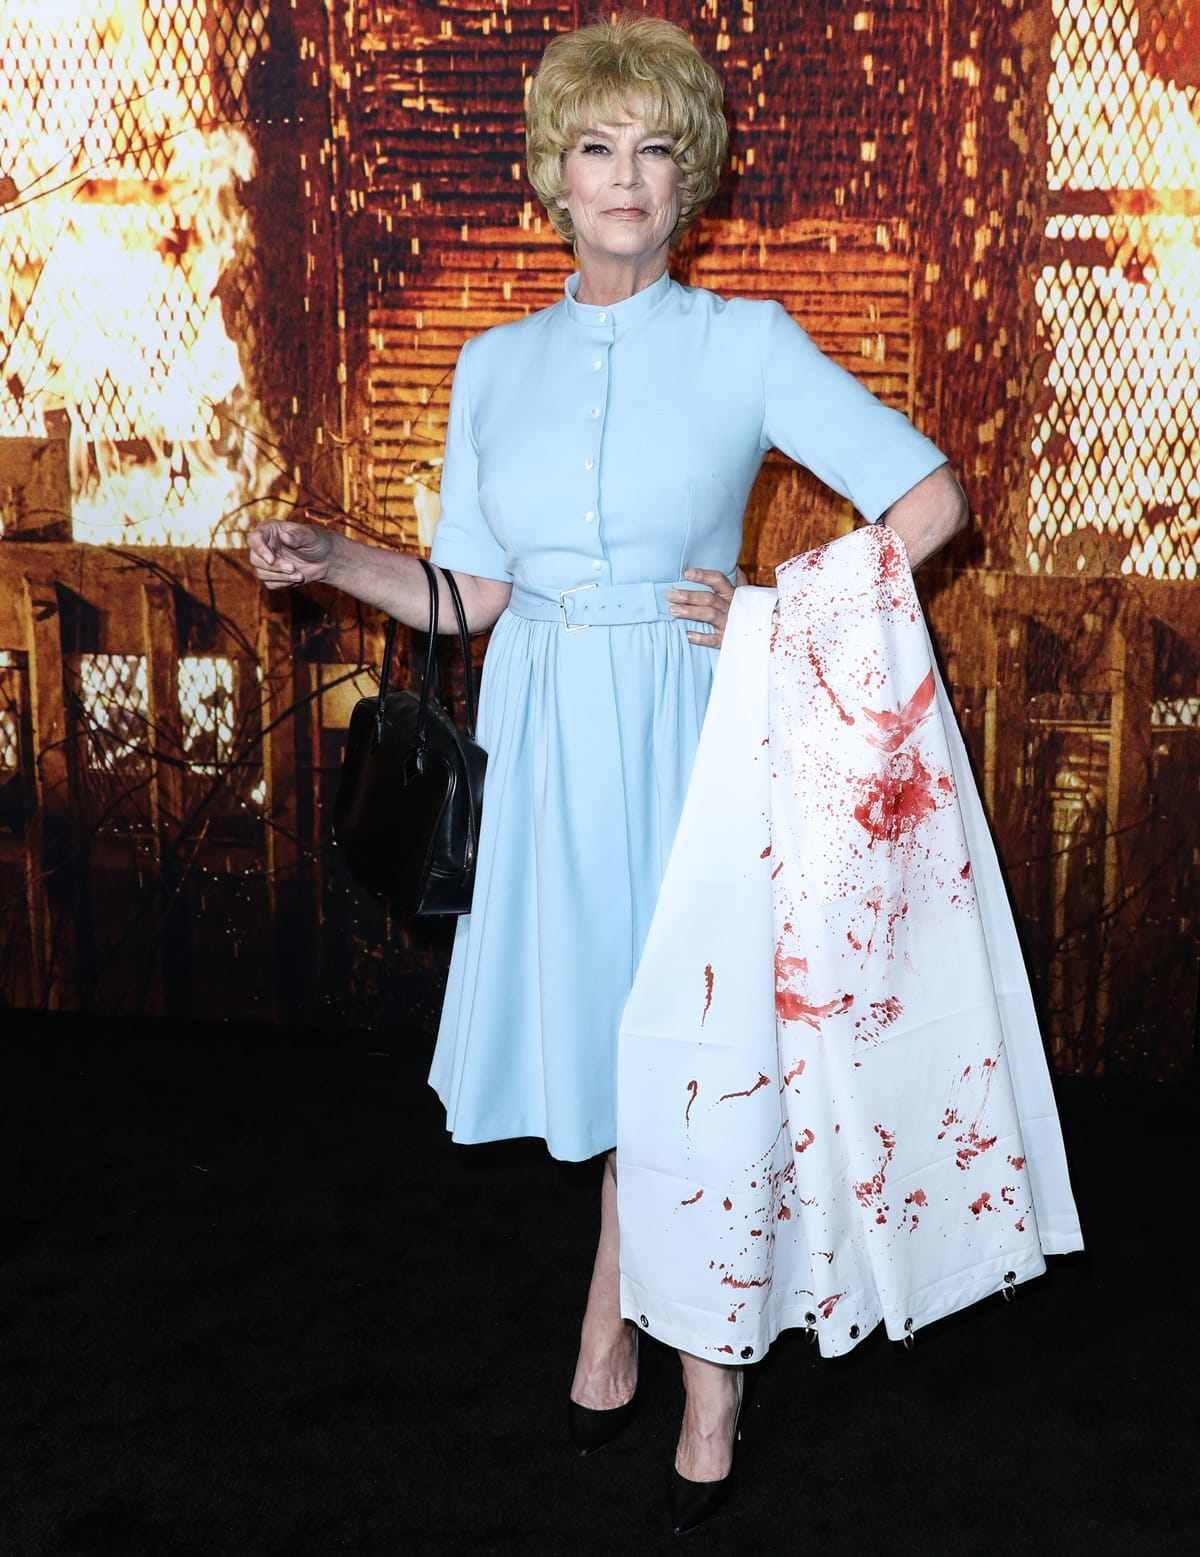 Wearing a costume inspired by her mom Janet Leigh's famous role from Psycho, Jamie Lee Curtis attends the premiere of her new movie Halloween Kills